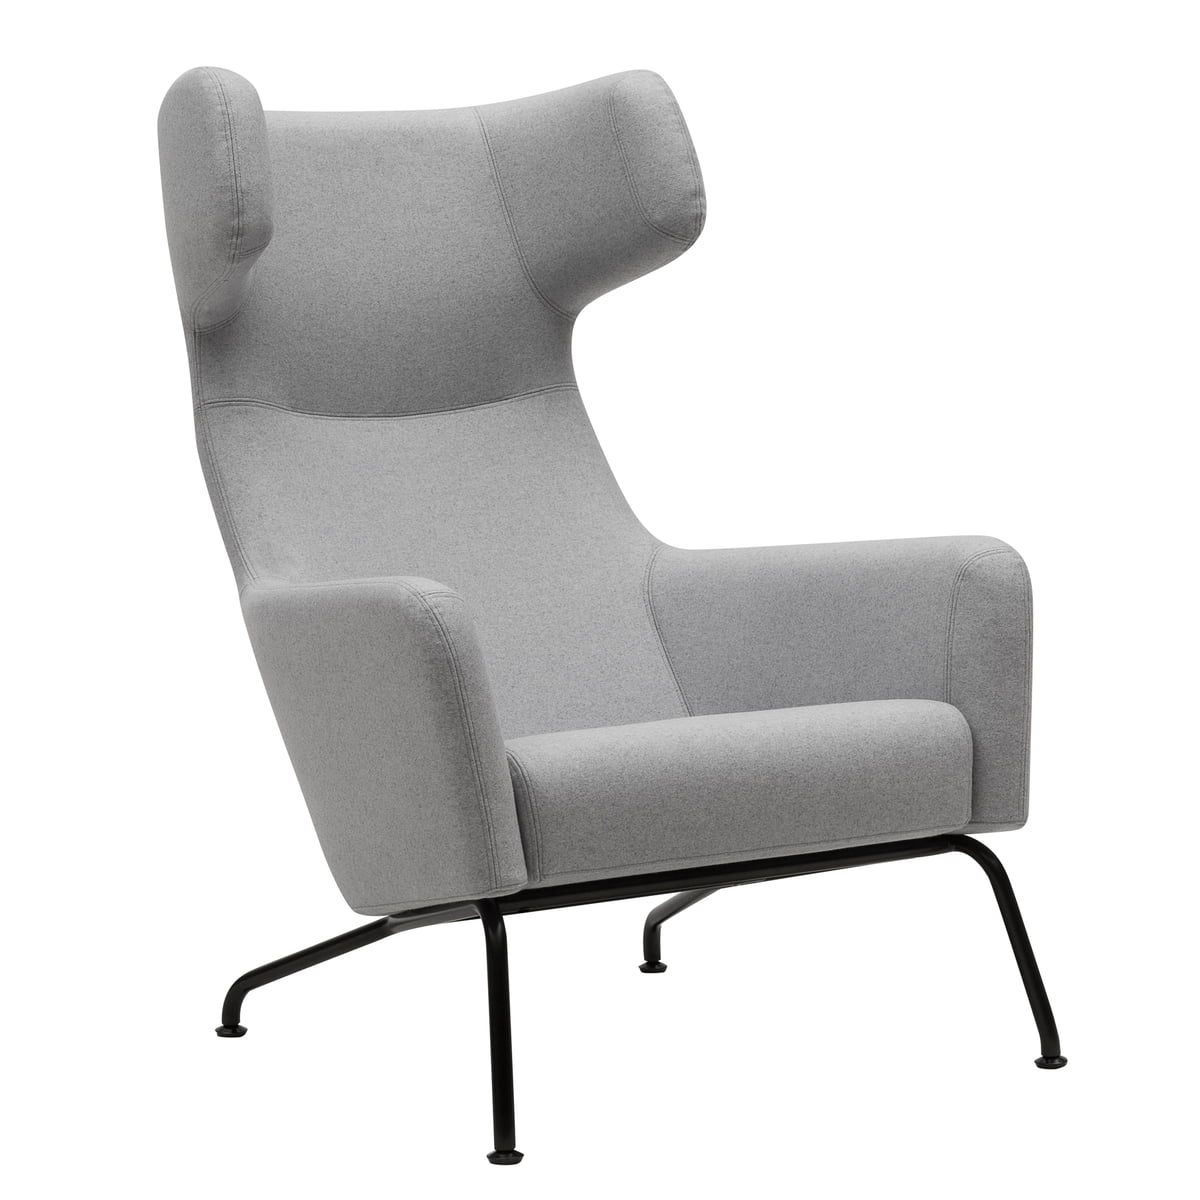 The havana armchair by softline in the shop for Ohrensessel schwarz